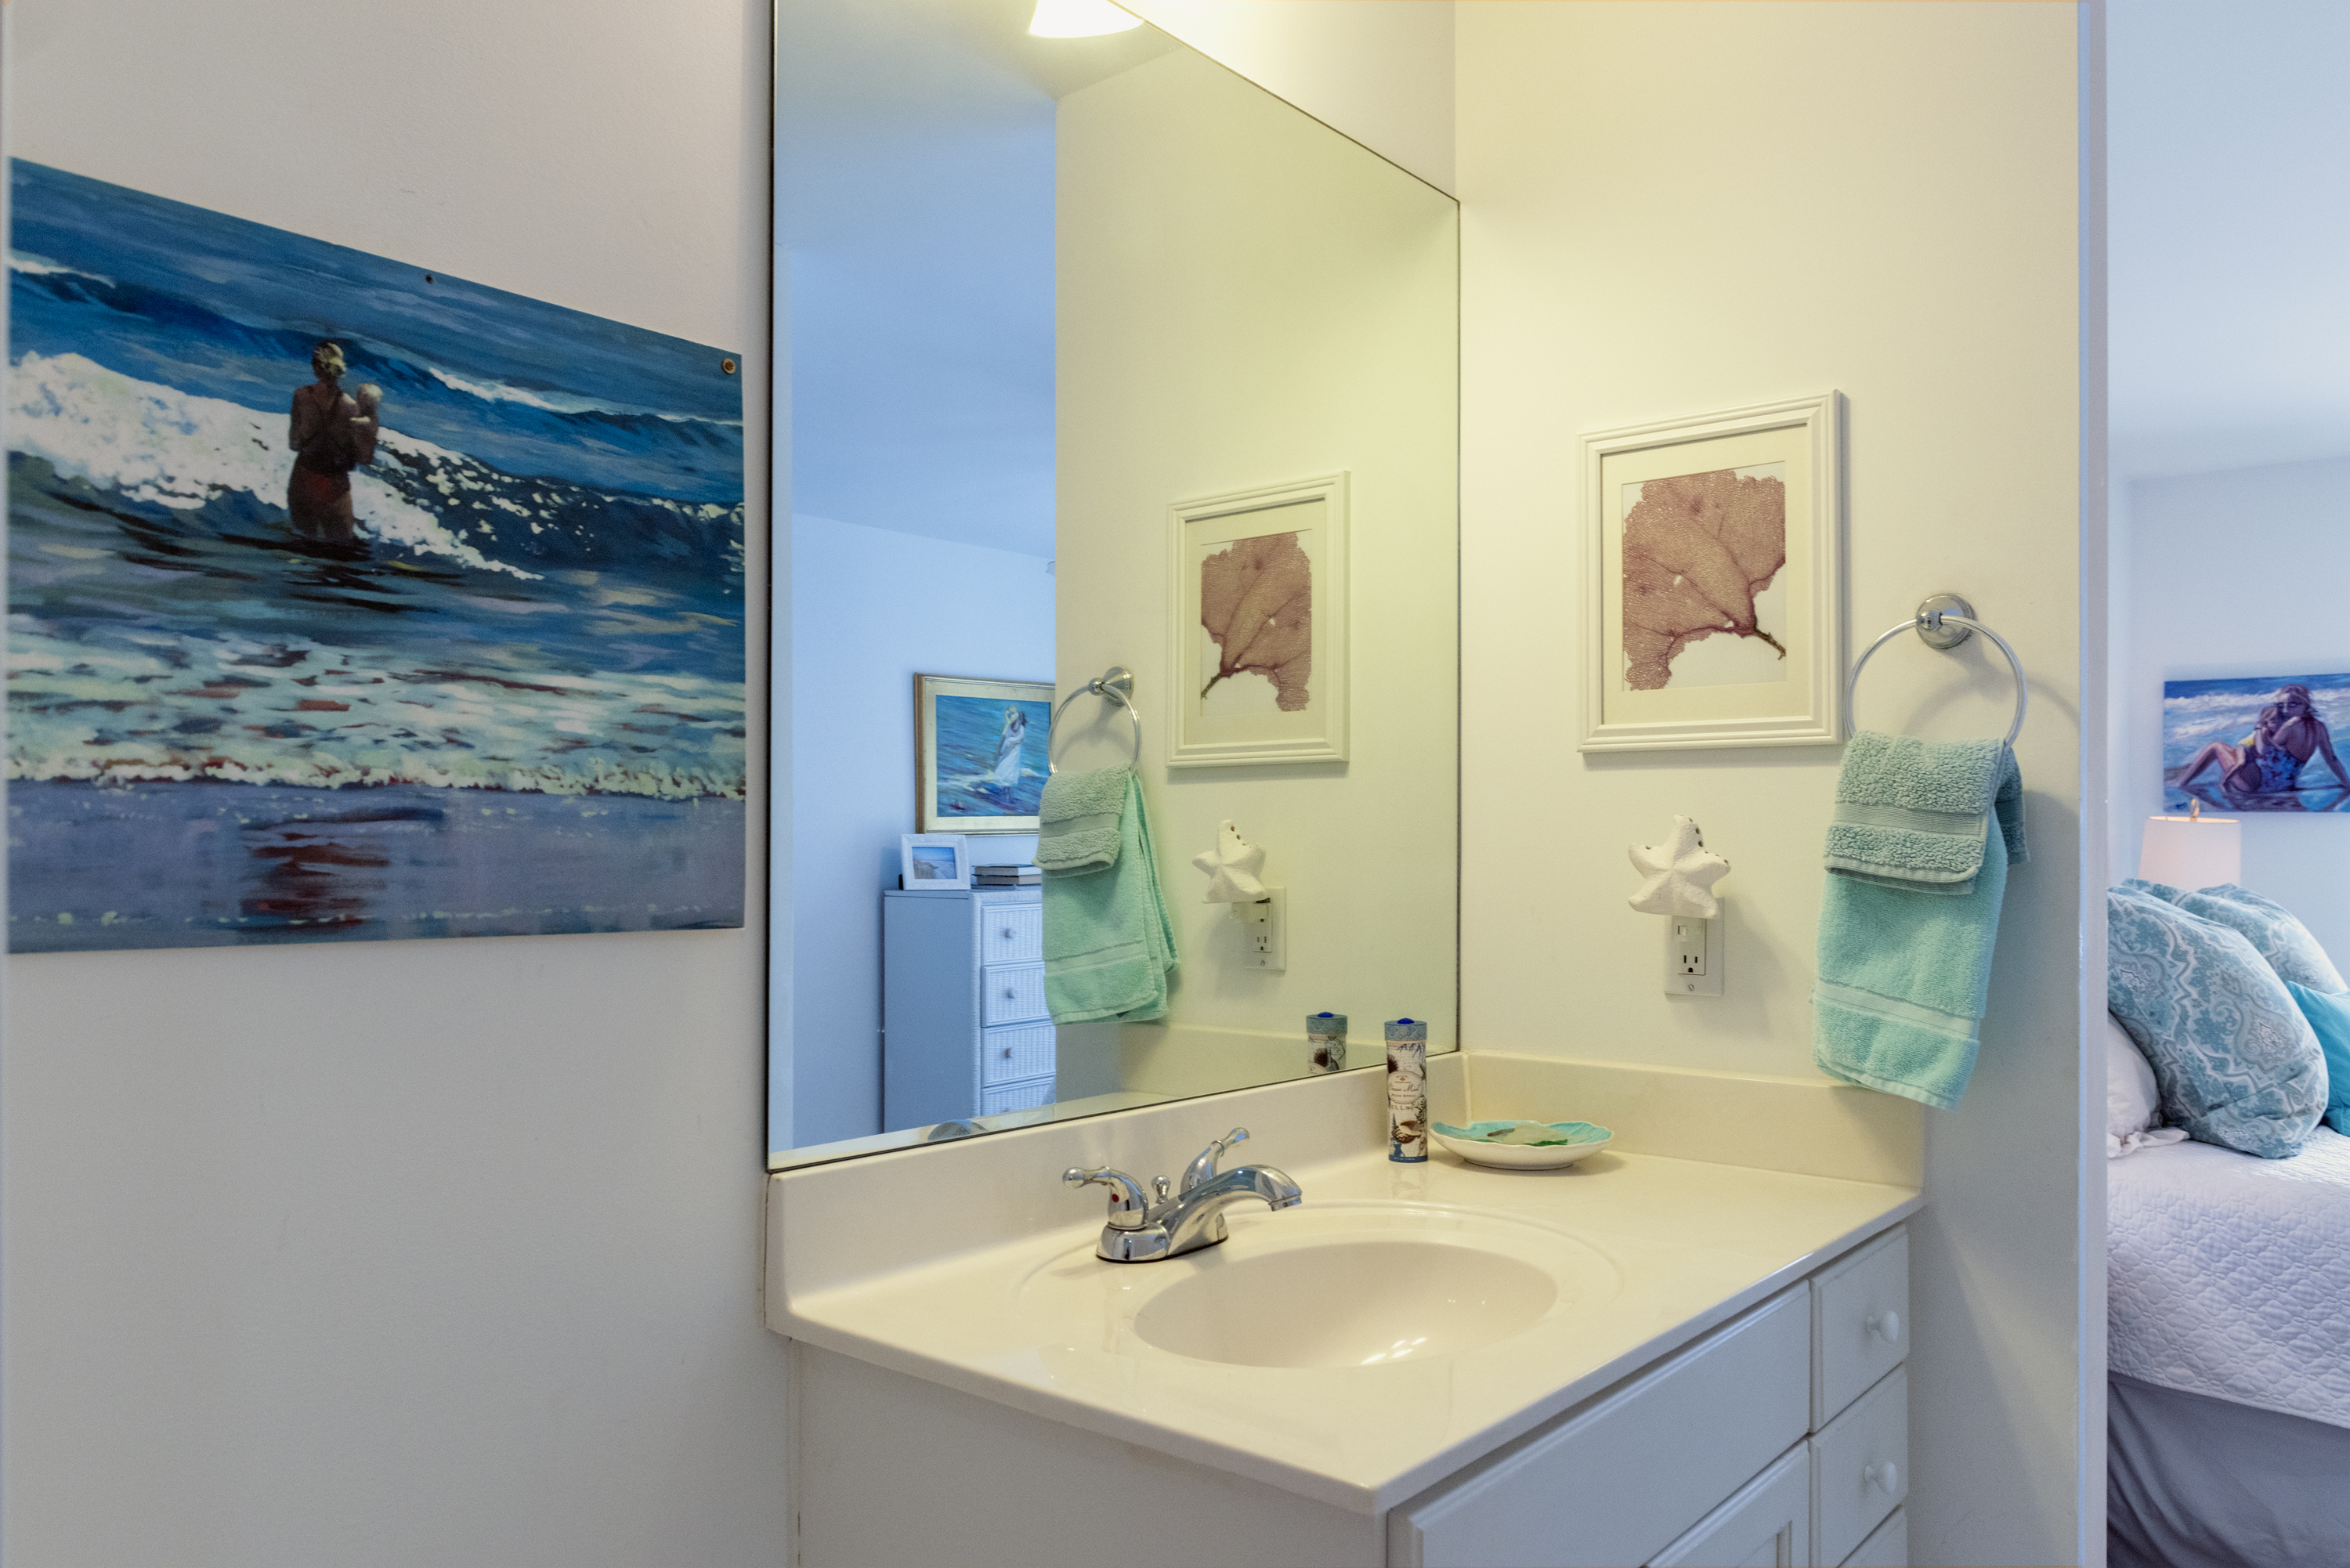 Separate vanities with shared tub/shower, toilet